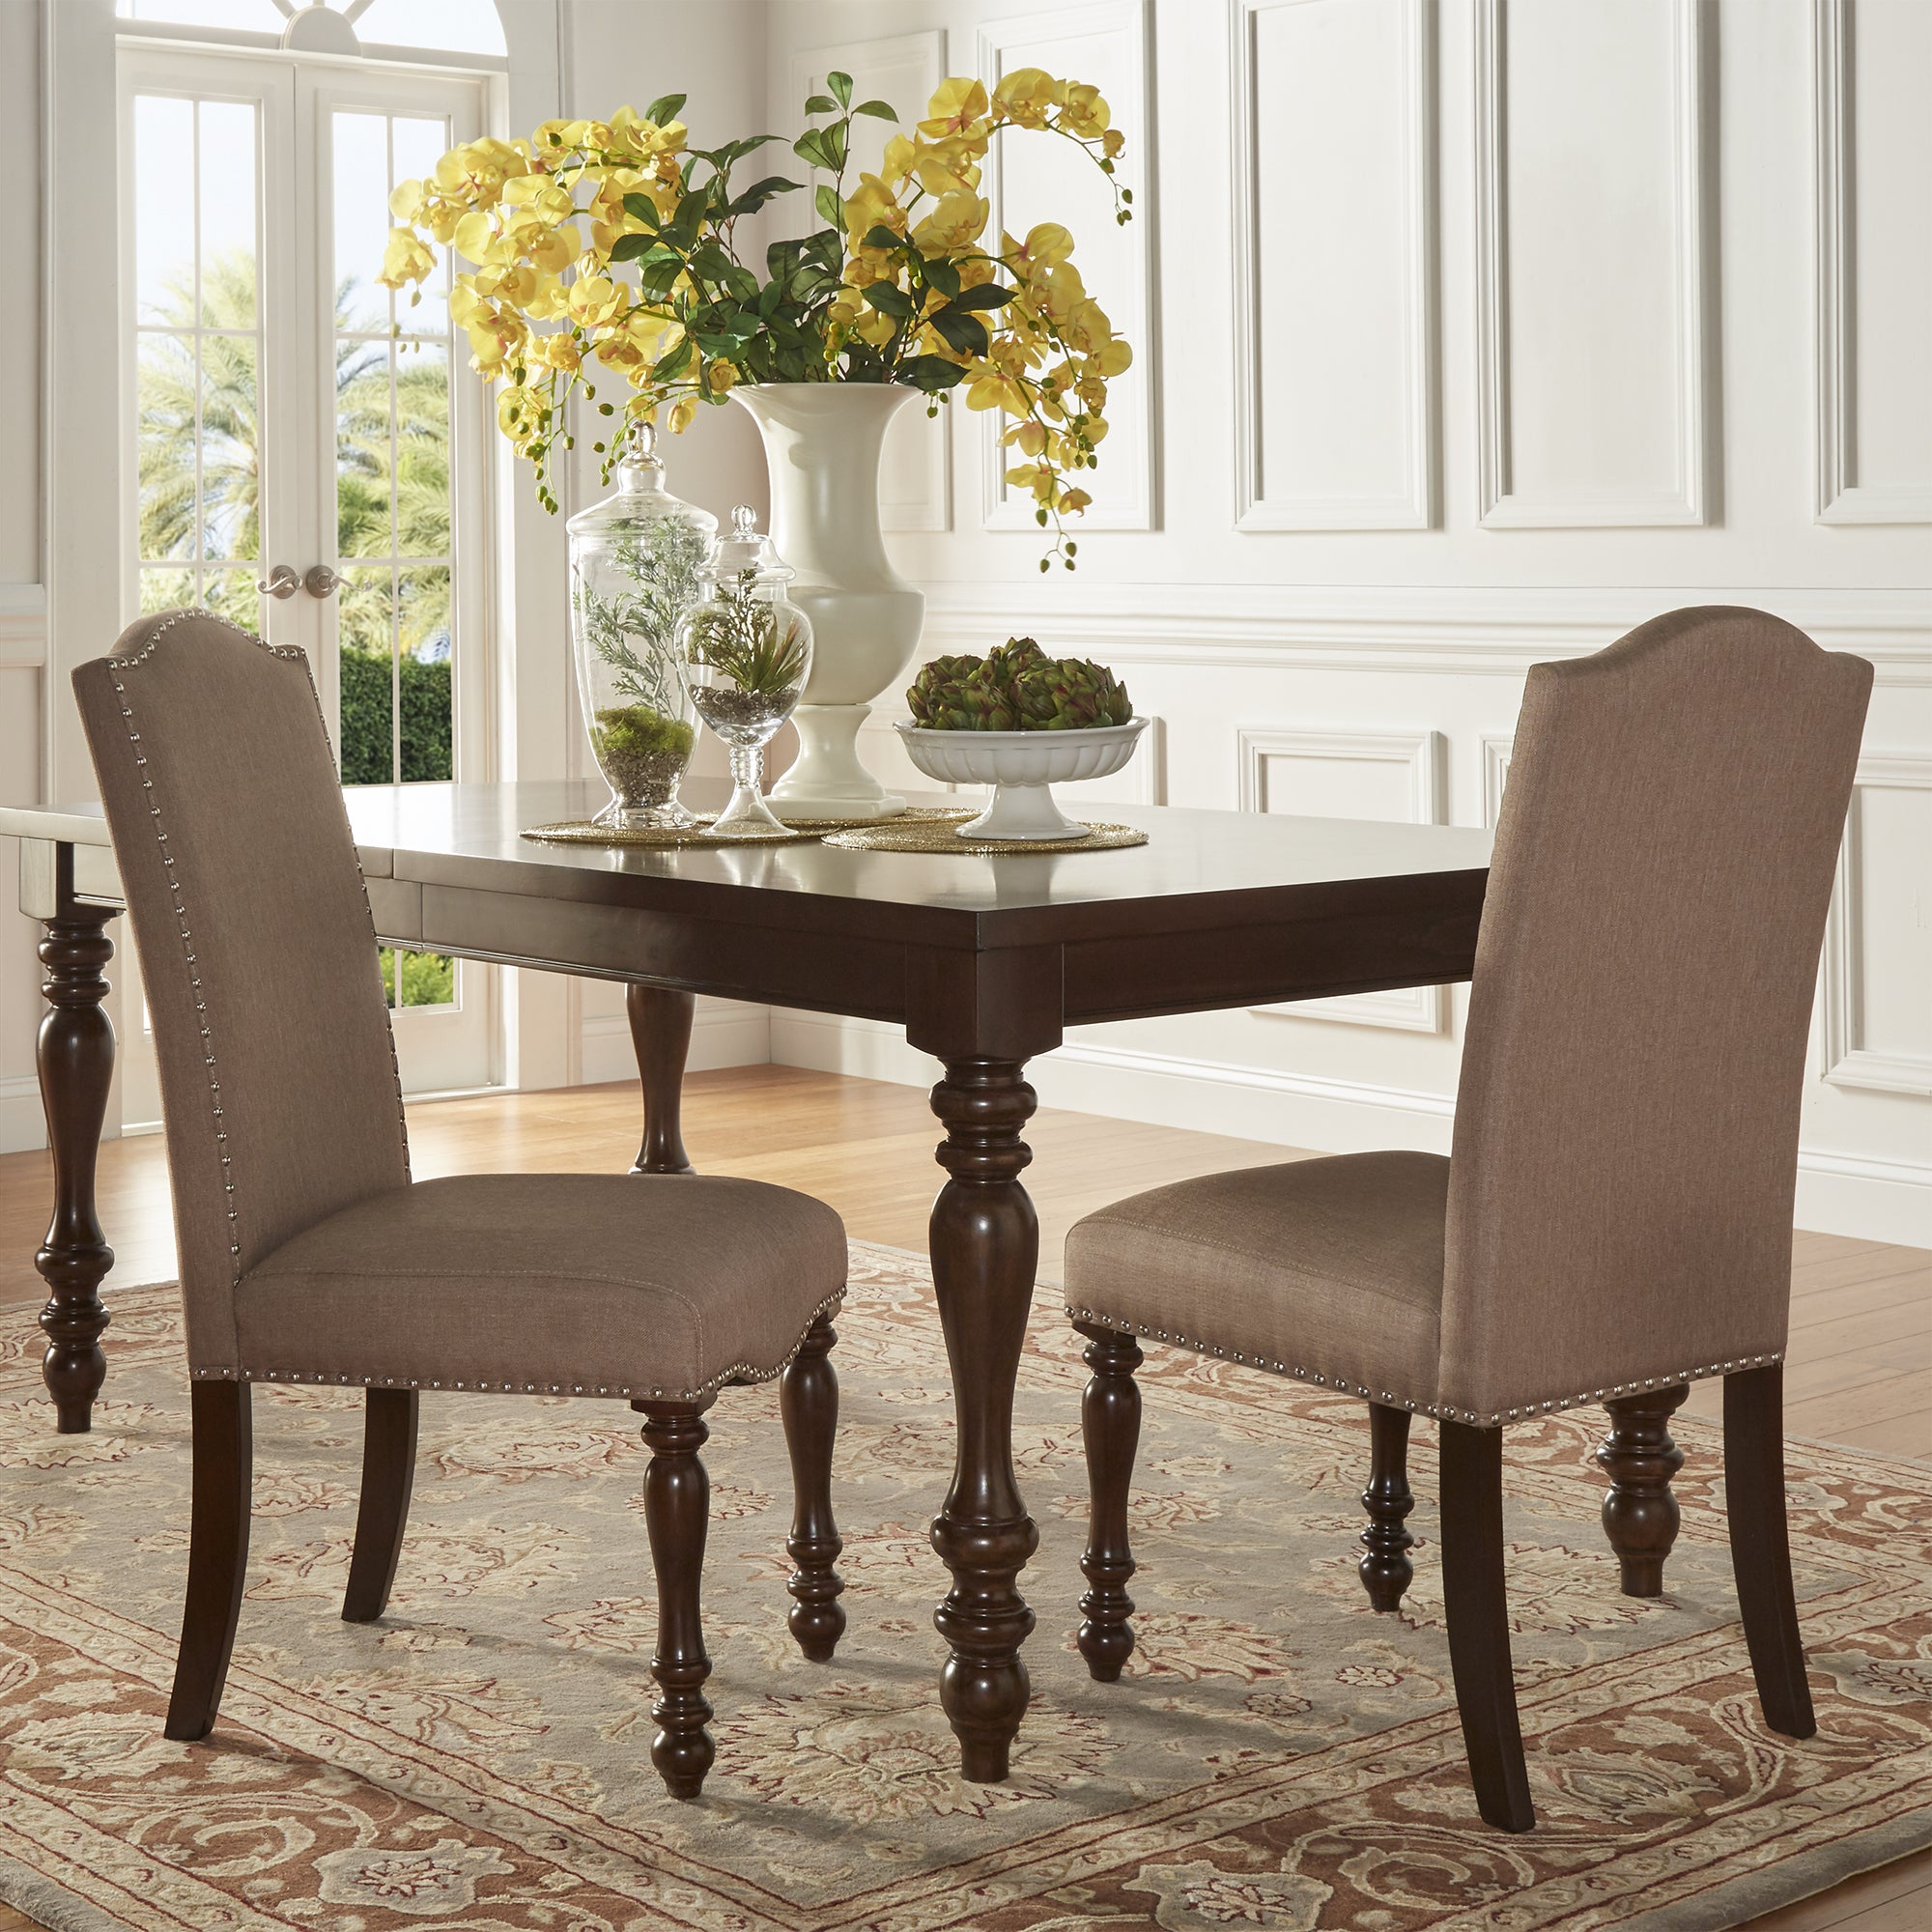 Parisian Nailhead Upholstered Dining Chairs (Set Of 2) By INSPIRE Q Classic    Free Shipping Today   Overstock   19409518